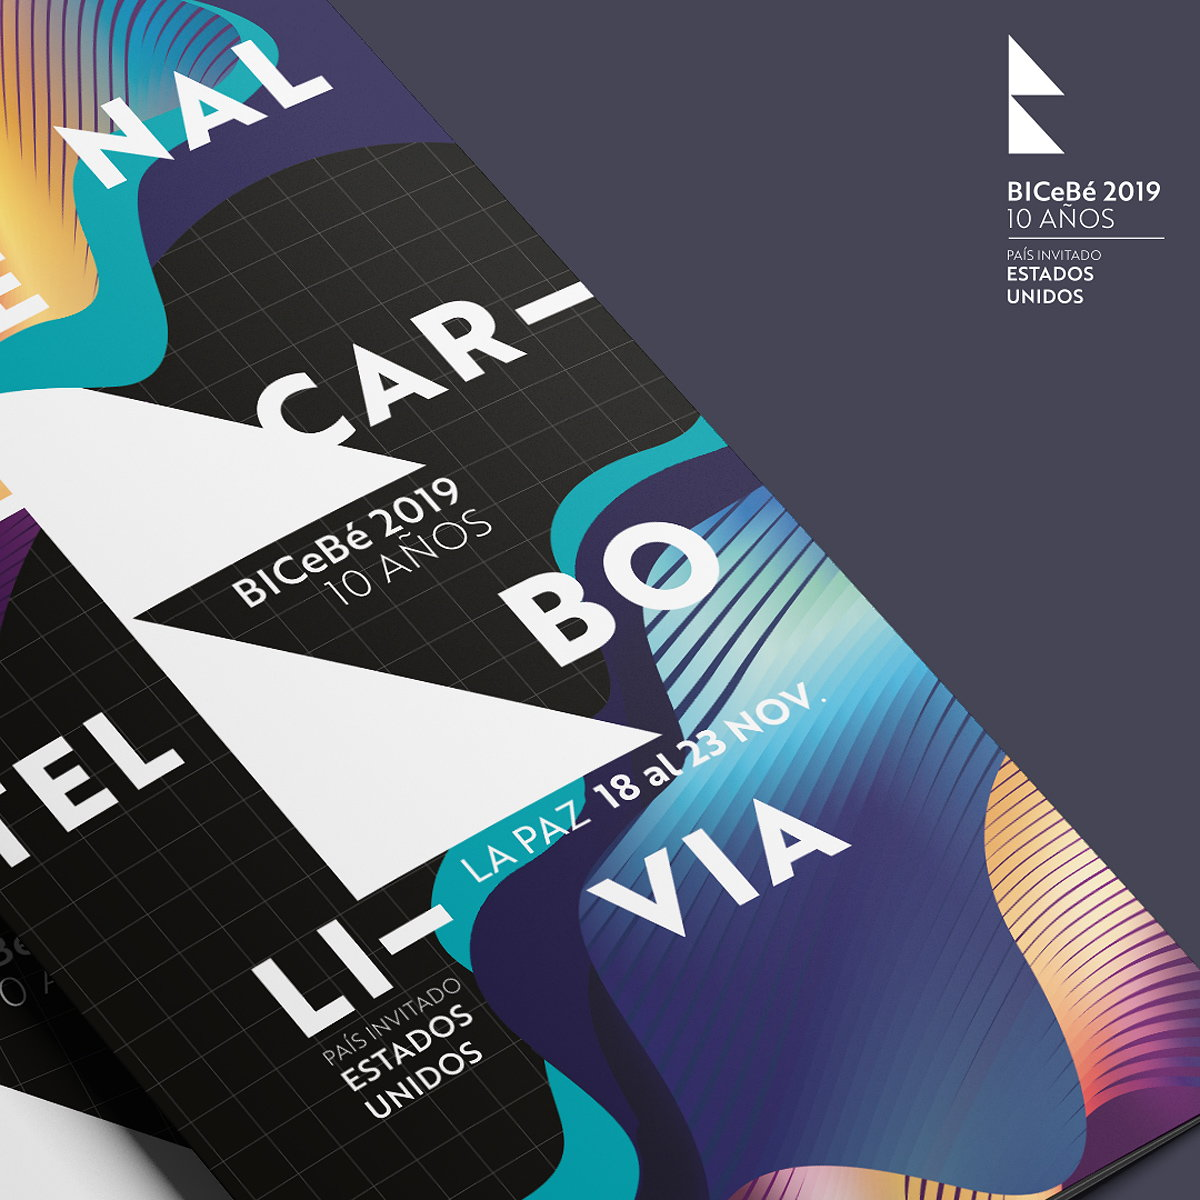 BICeBé 2019 International Poster Call